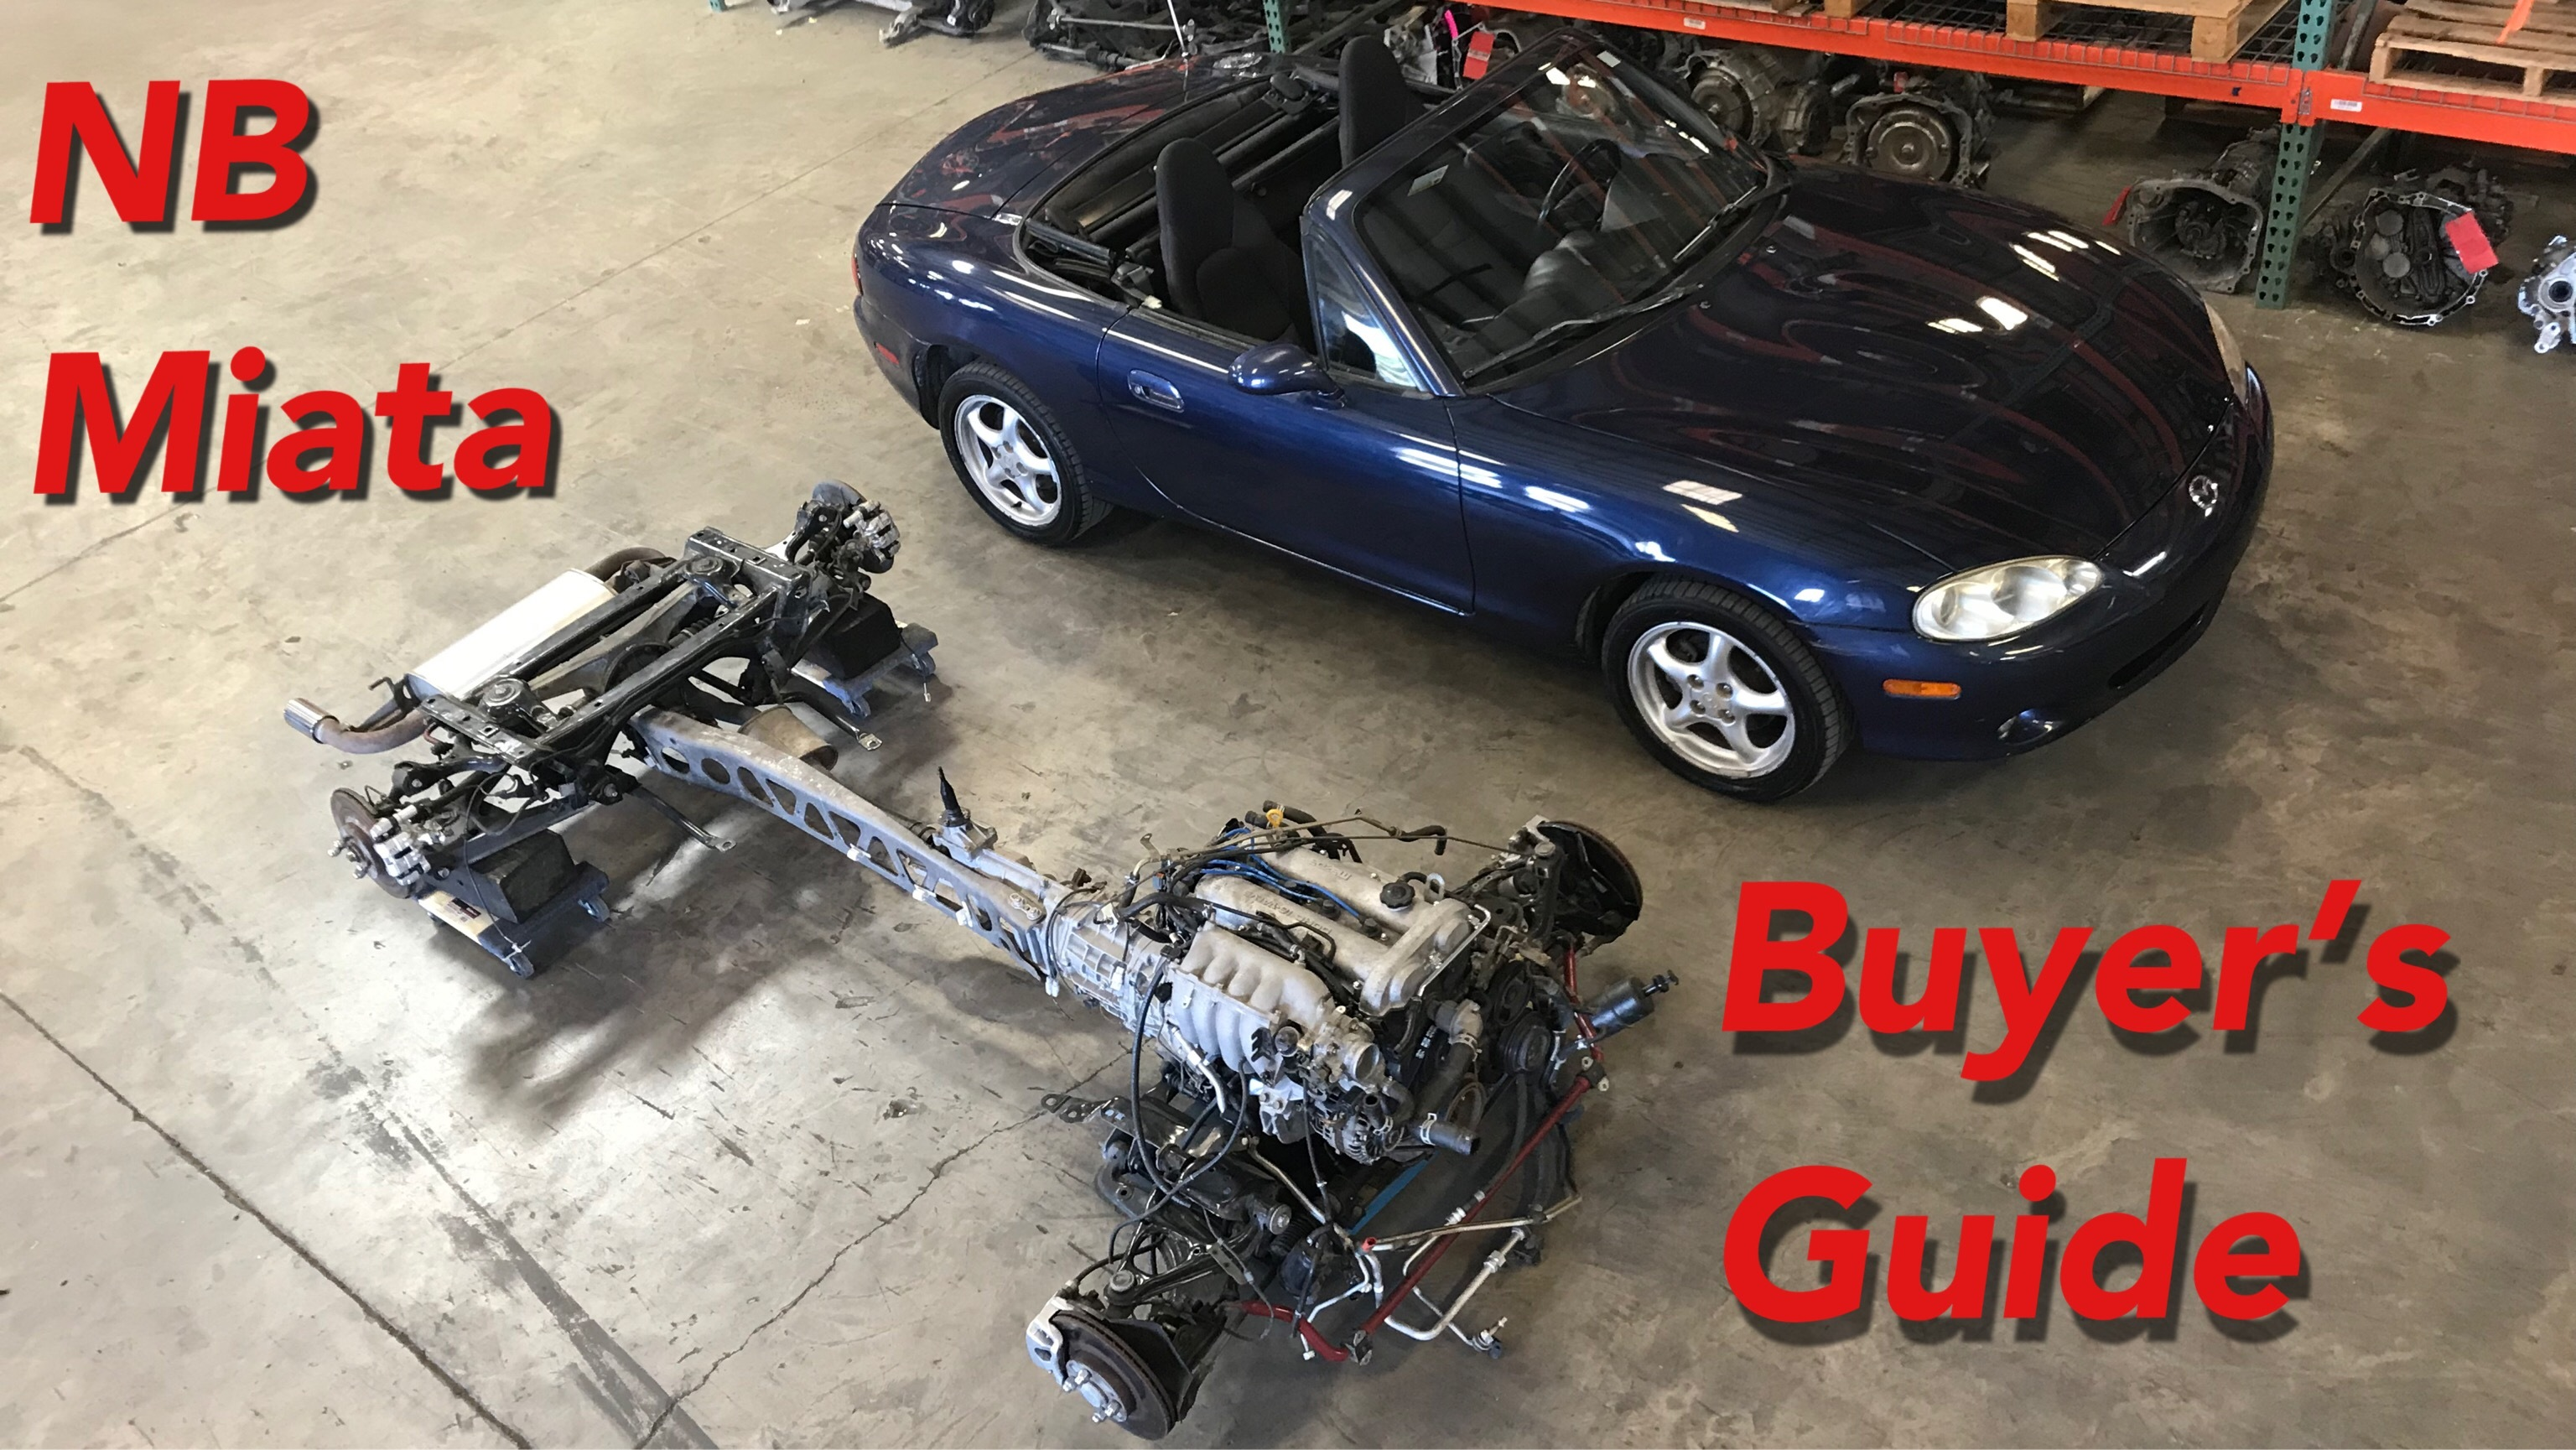 NB Miata Buyer's Guide (1999-2005)